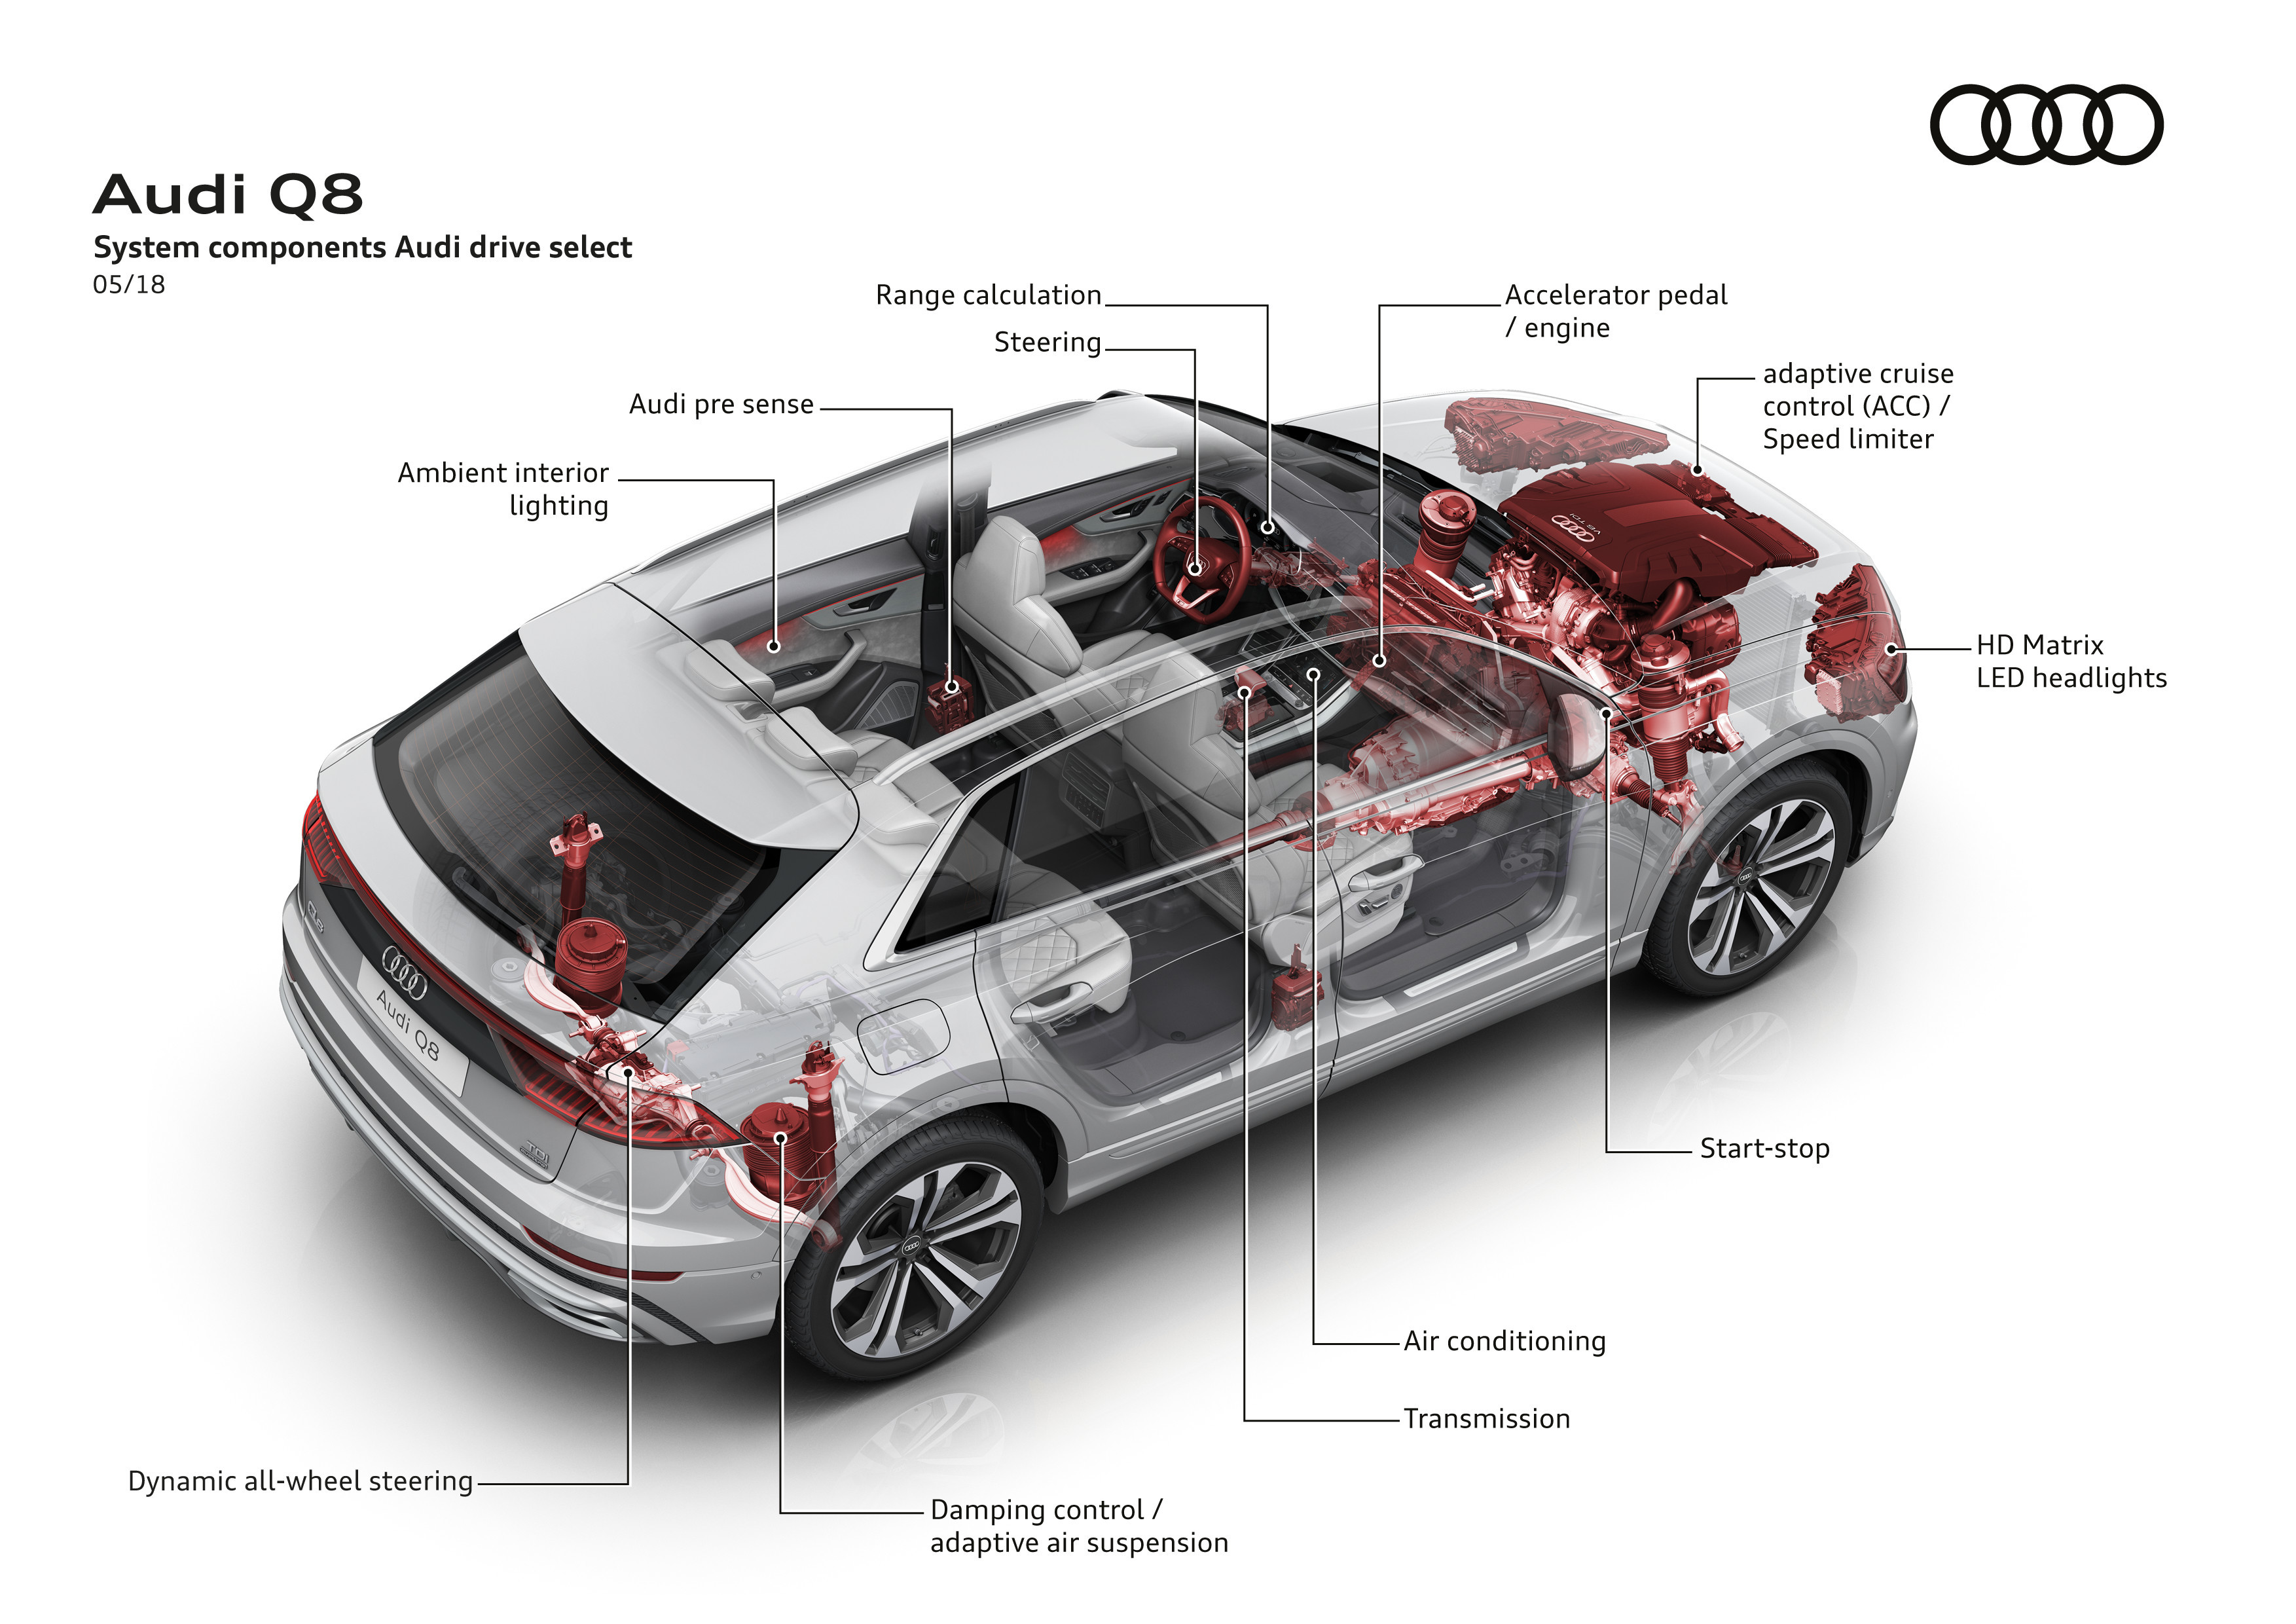 System components Audi drive select